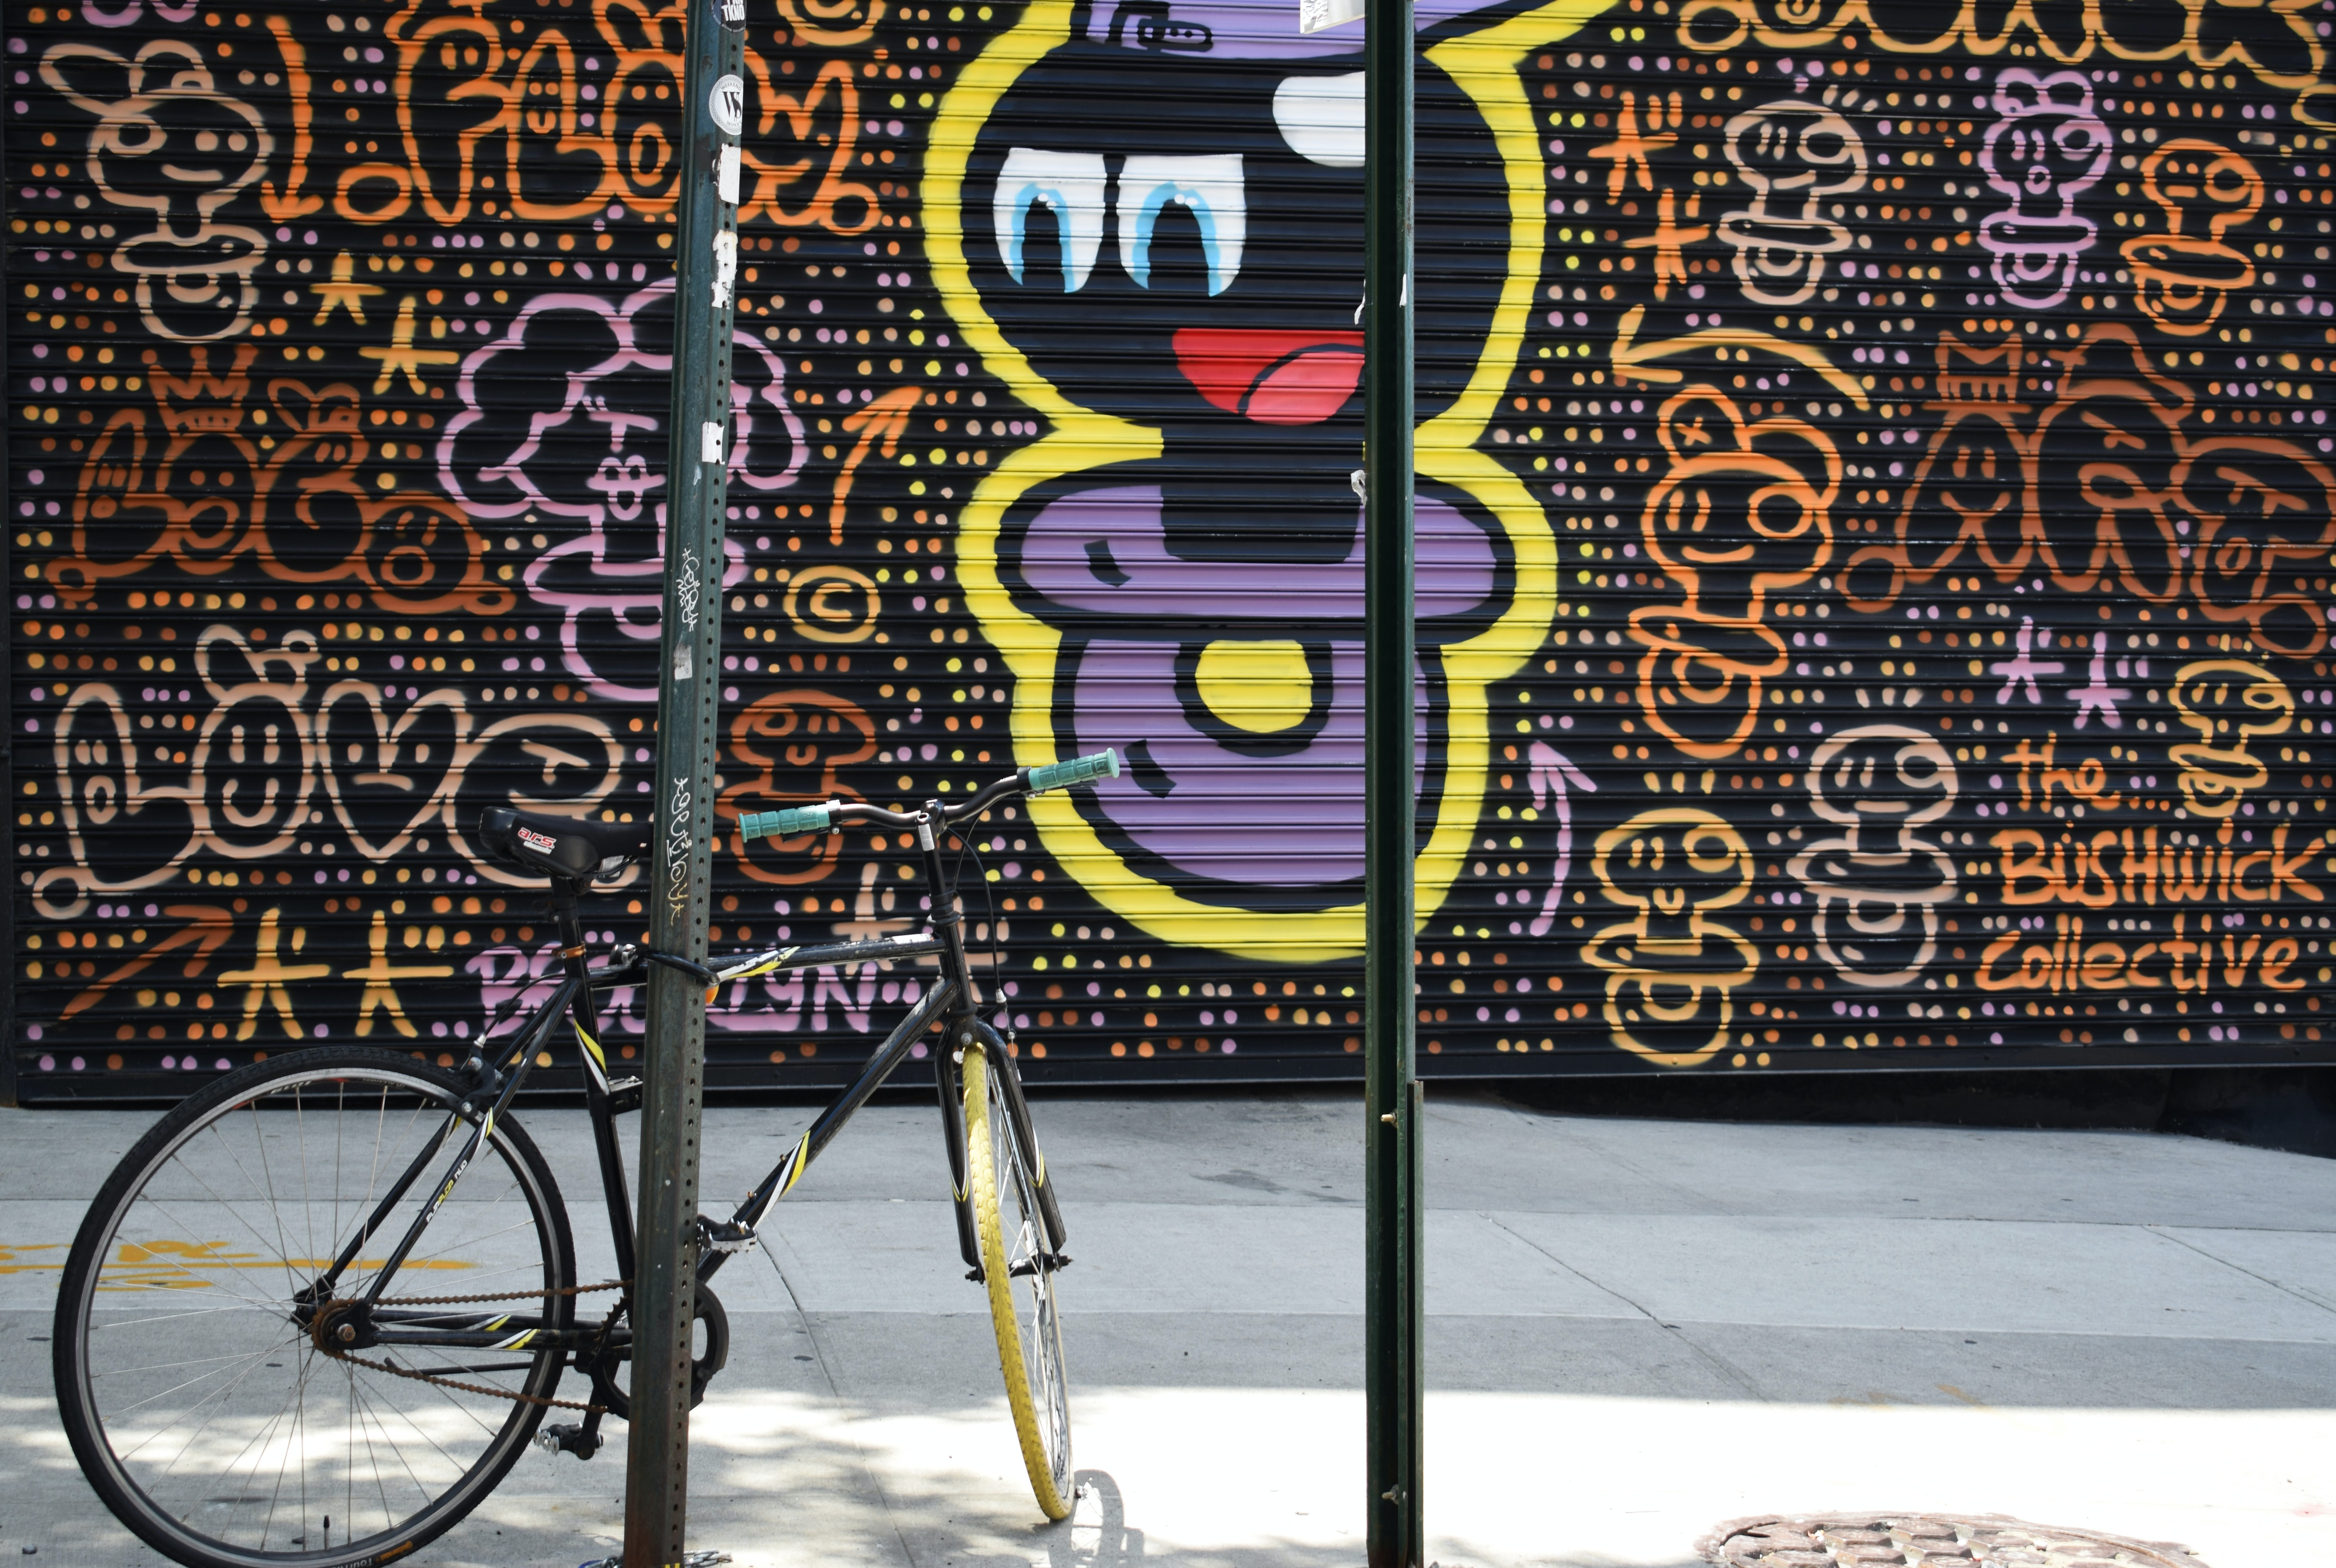 Cartoonish colorful purple graffiti covering urban wall with bike leaning against post on sidewalk